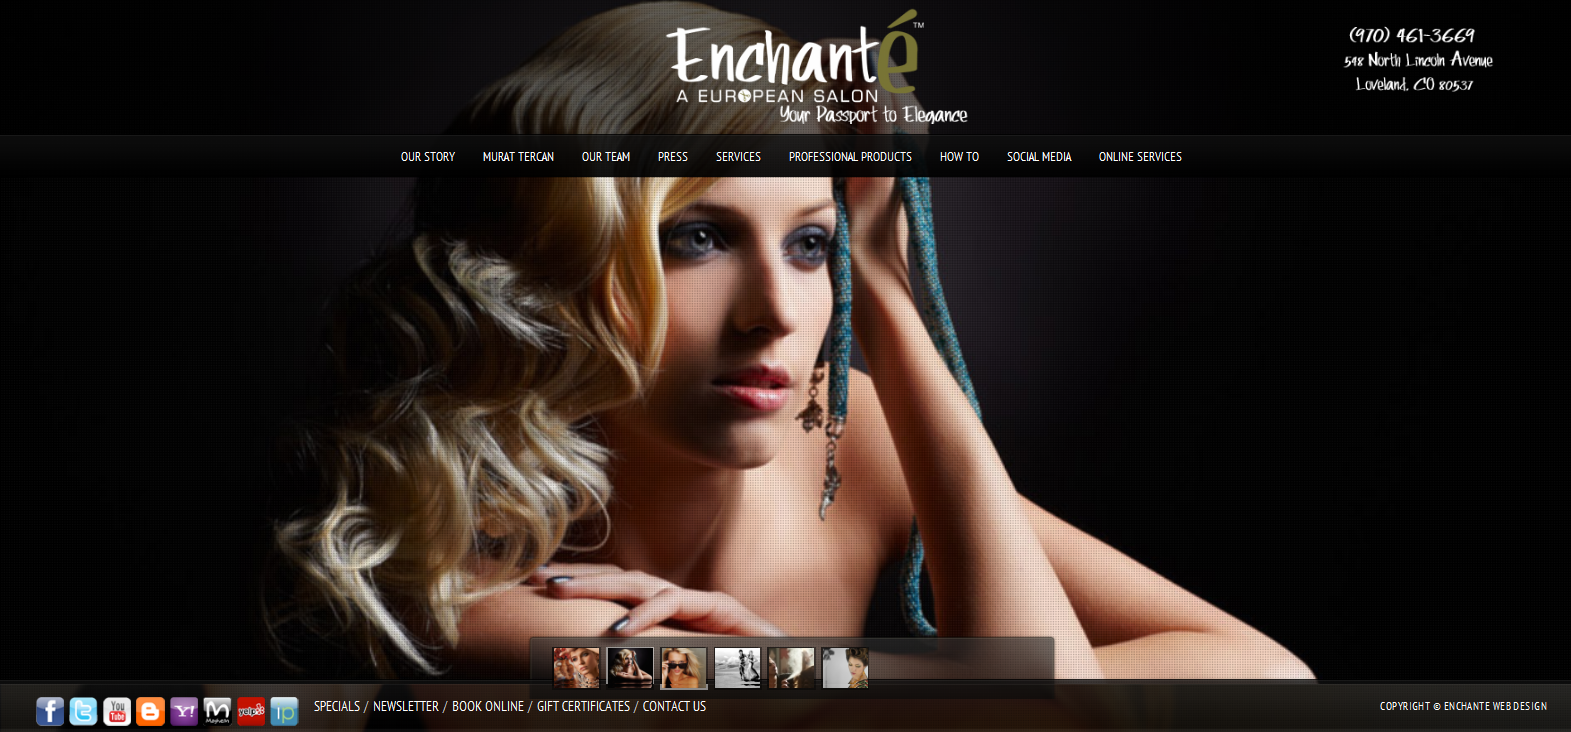 Enchante A European Salon and Spa Loveland Colorado beauty salon top salon